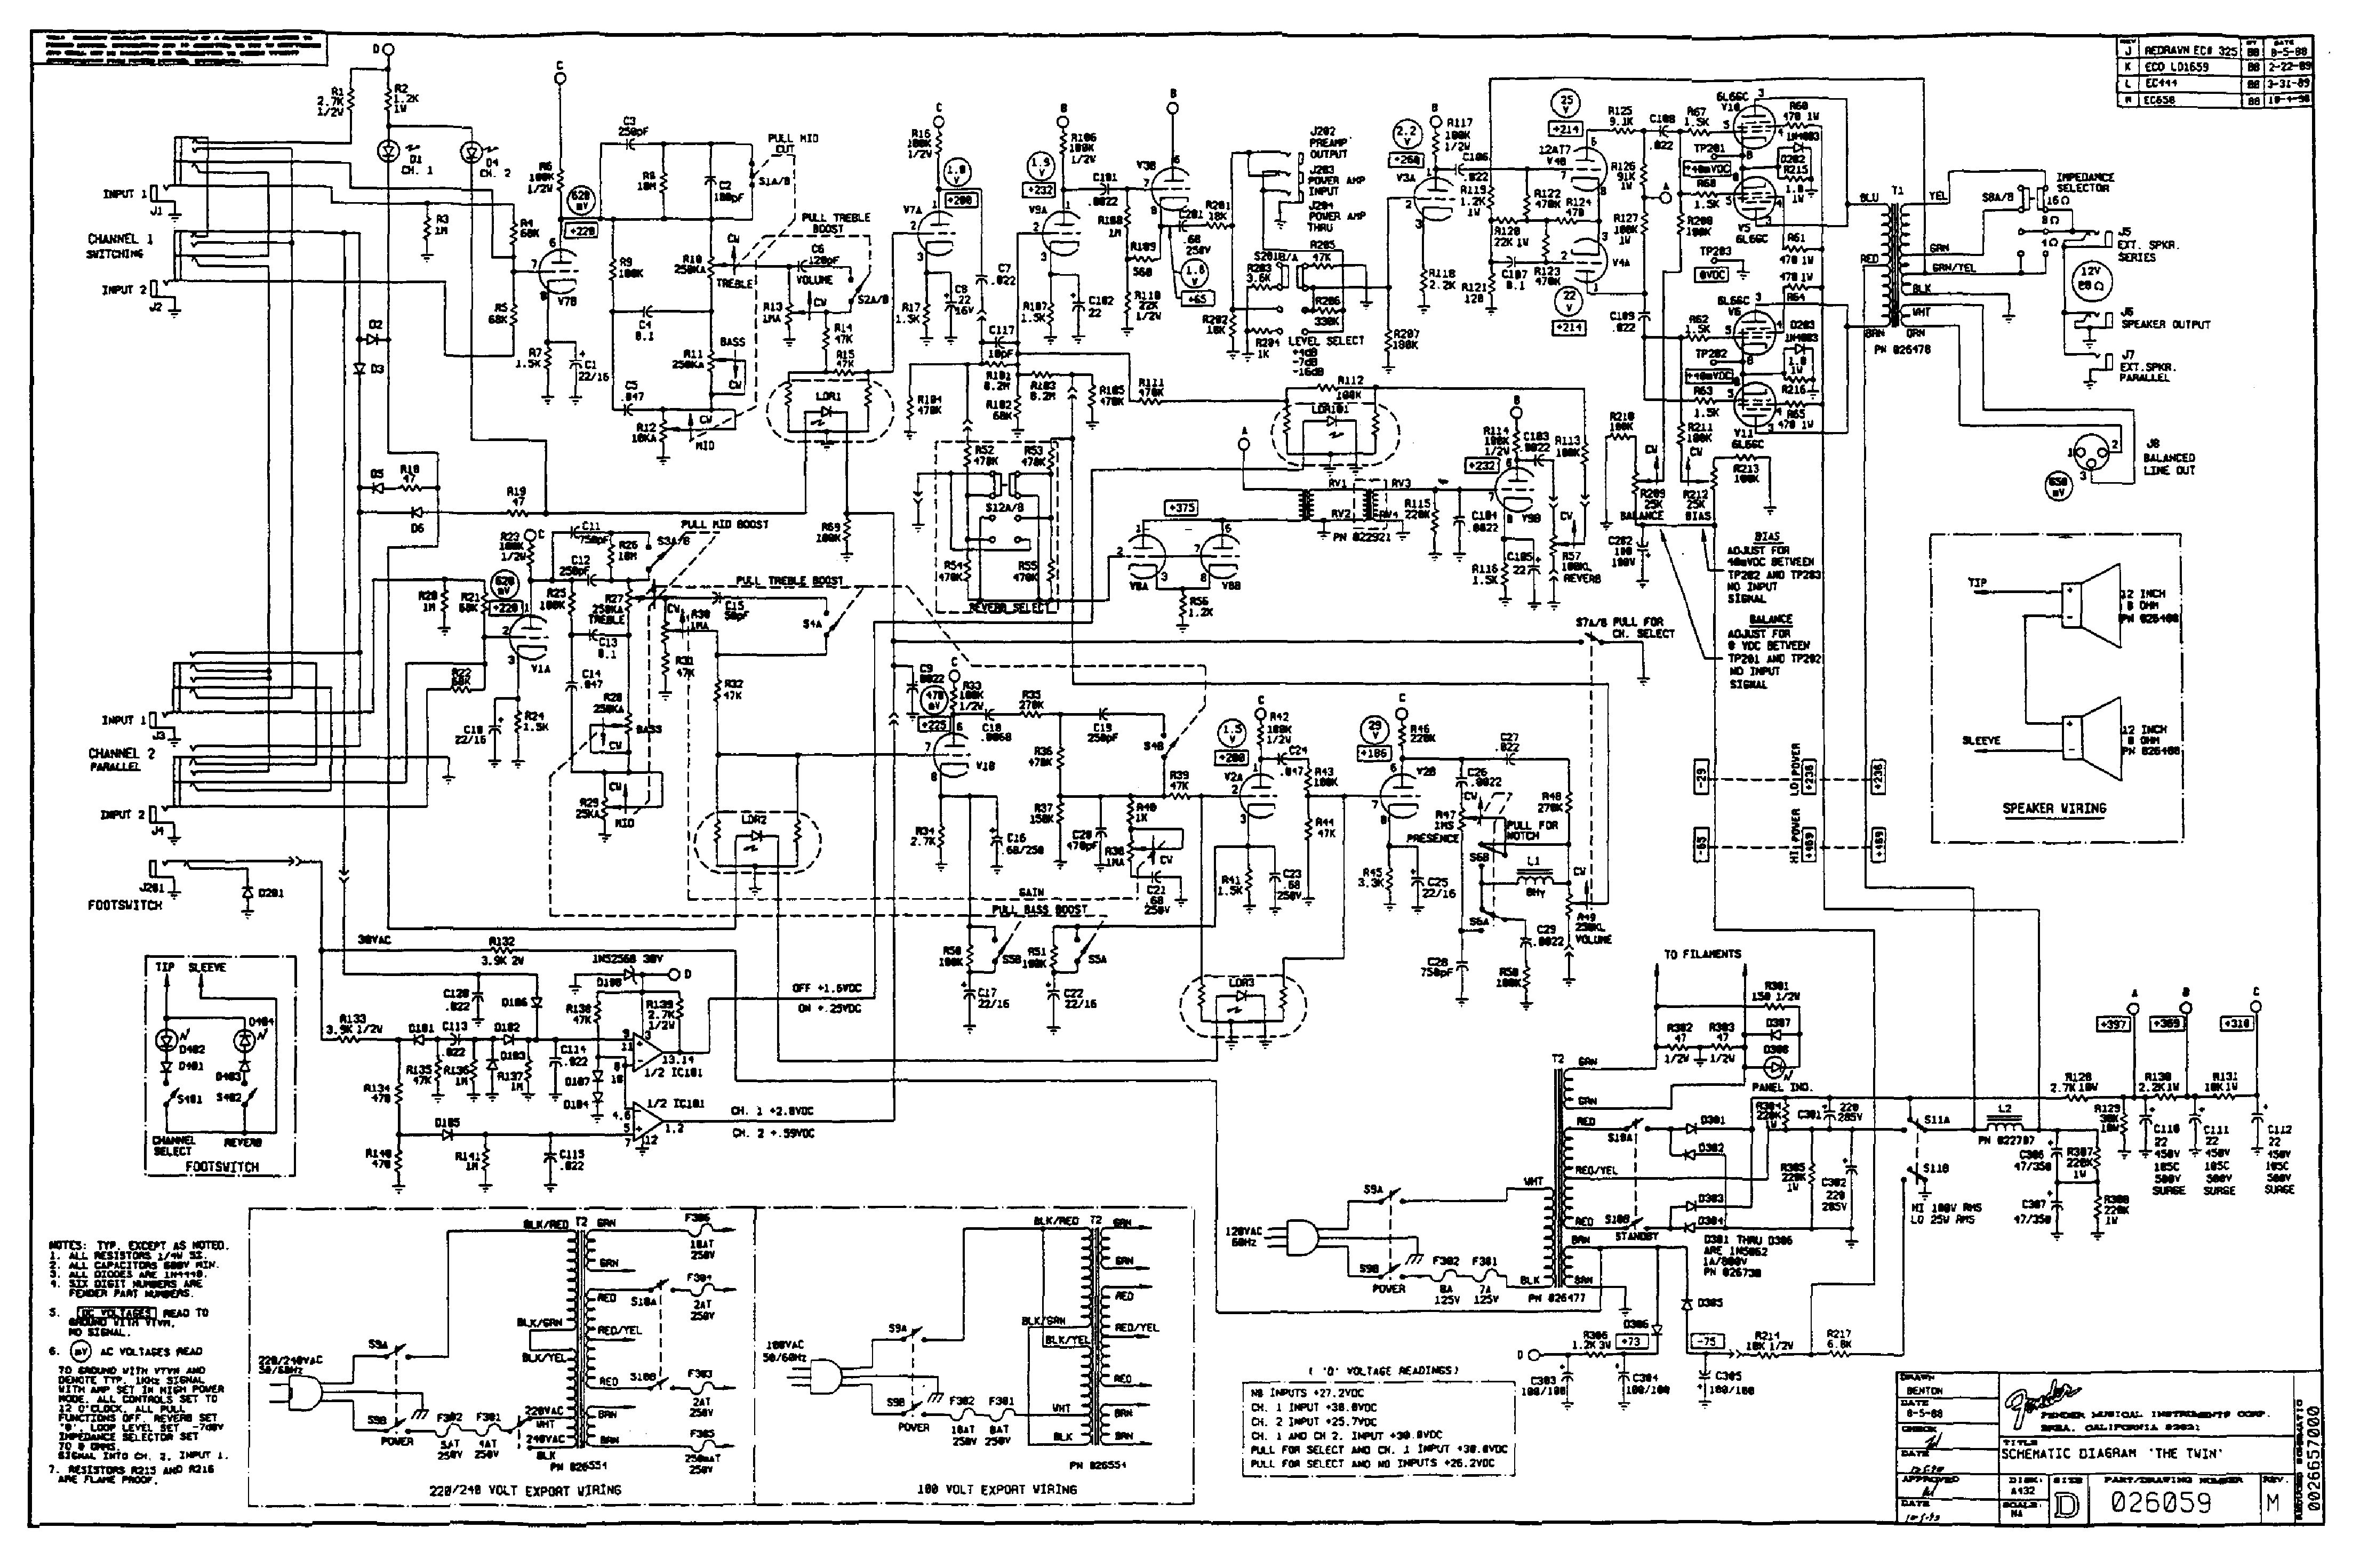 Fender Fm65dsp Sch Service Manual Download Schematics